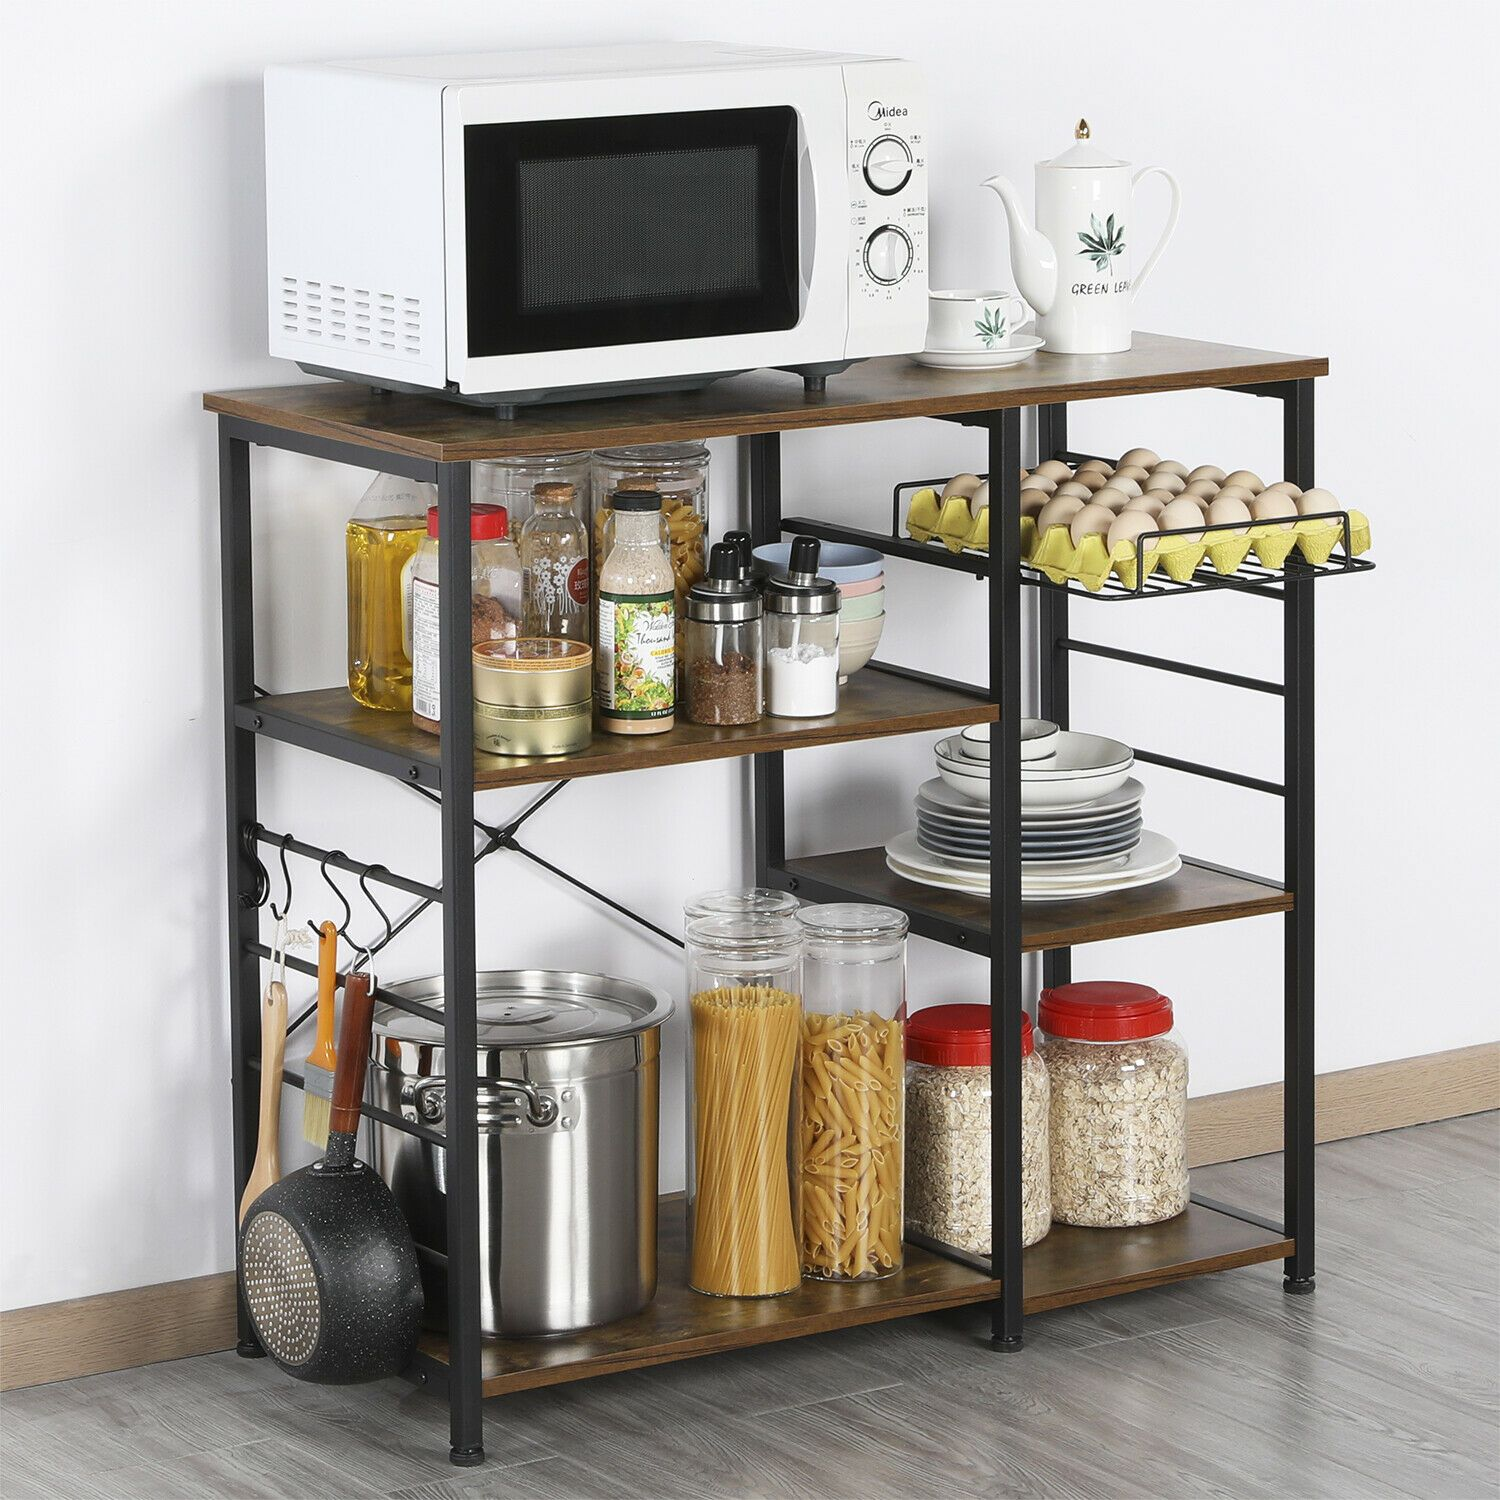 Details About 3 Tier Kitchen Baker Rack Microwave Oven Rack Stand